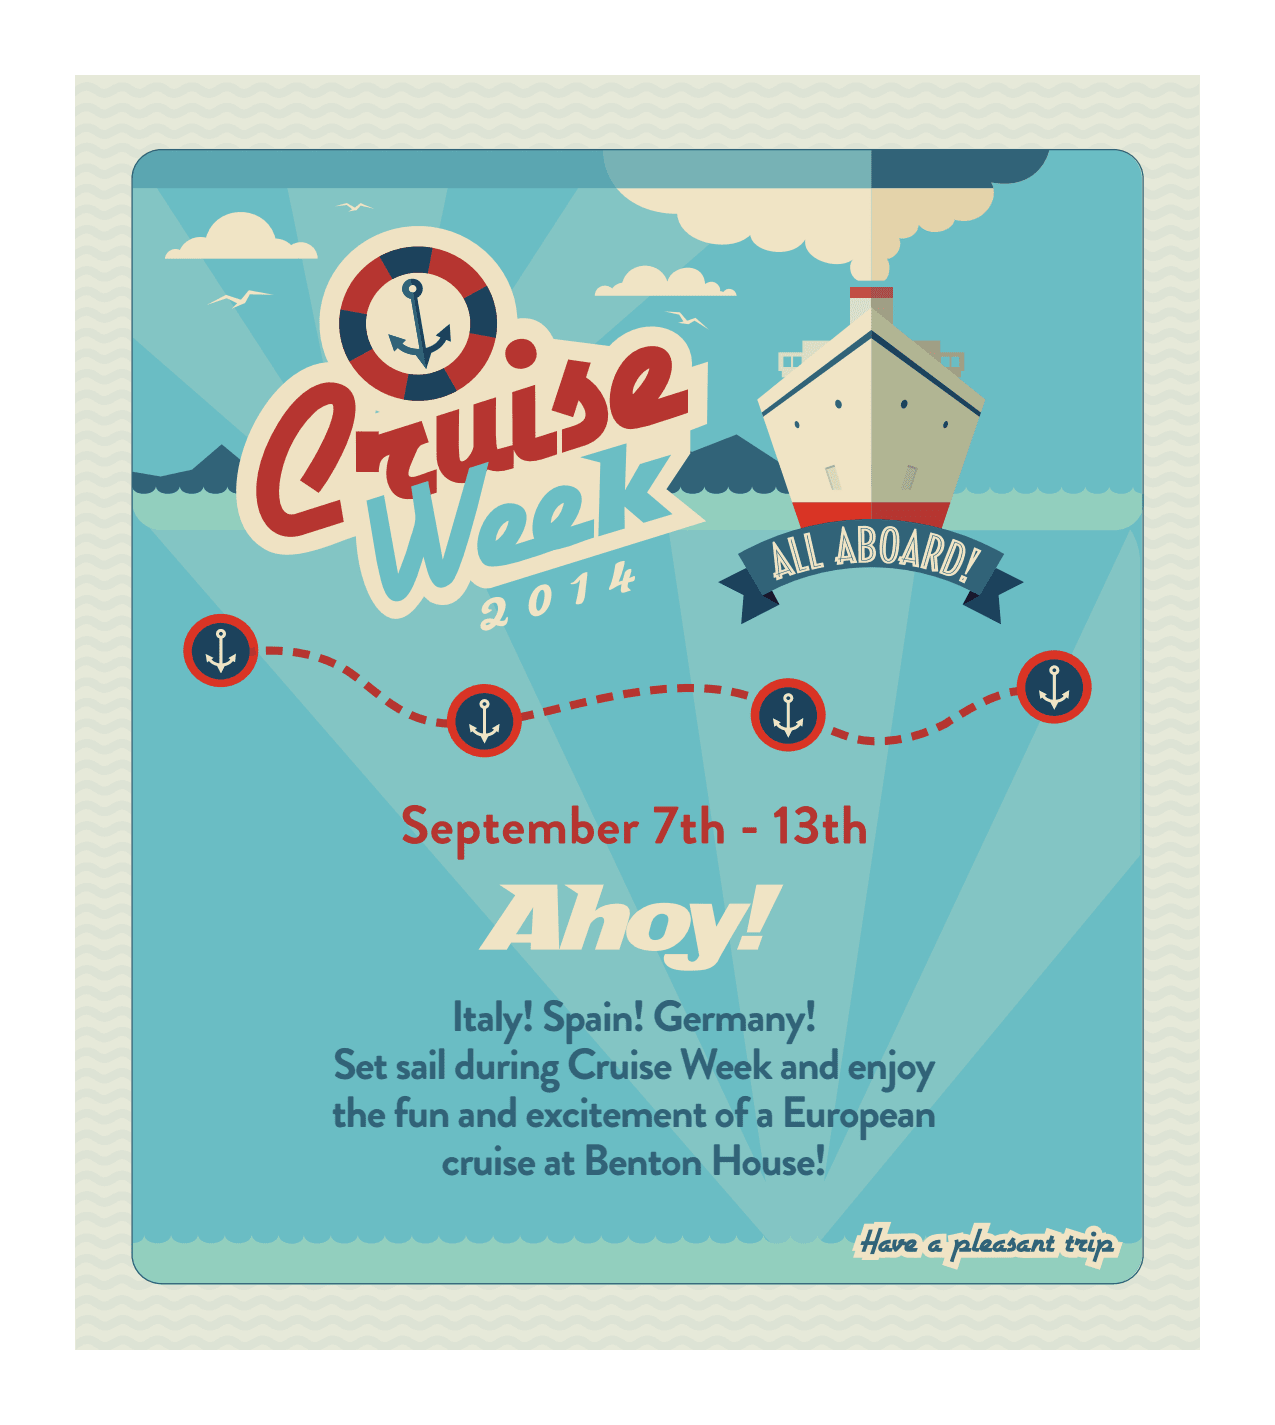 Cruise Week - activities at Benton House of Raymore in Raymore, MO